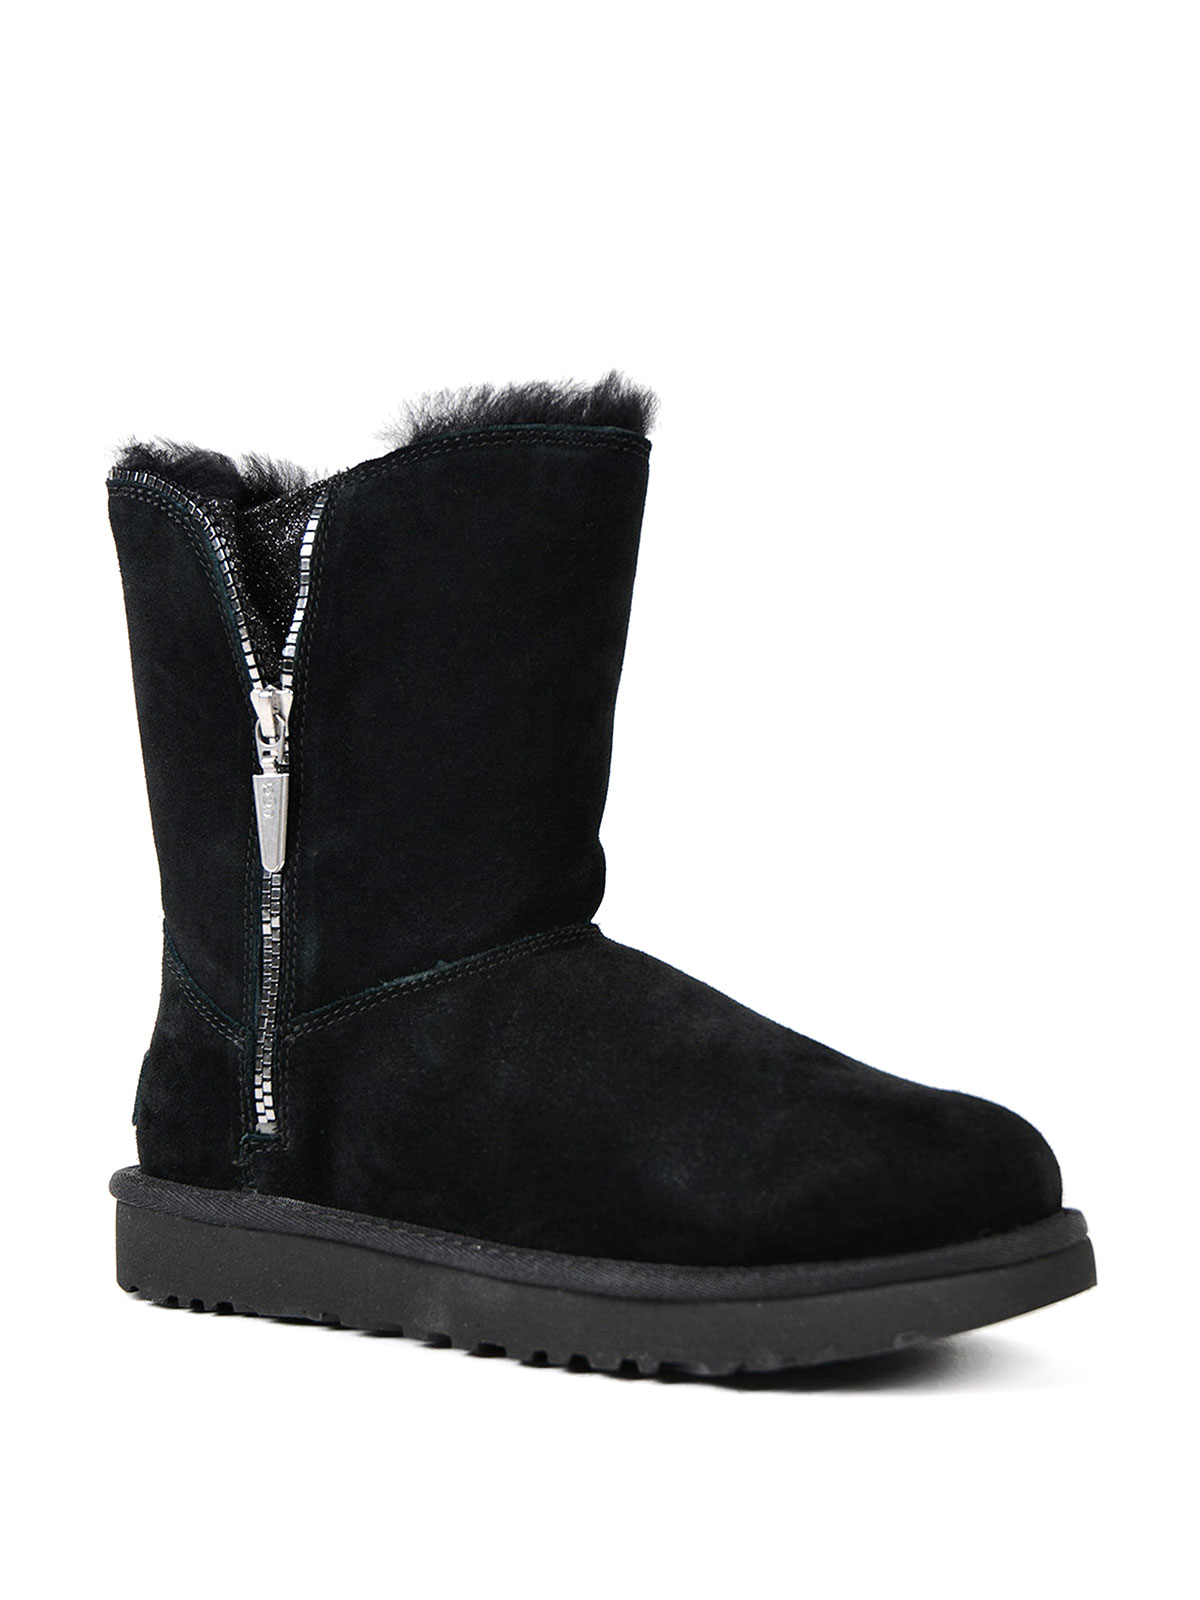 f787ad3d701 Ugg - Marice black suede booties - ankle boots - 1019633 BLACK ...